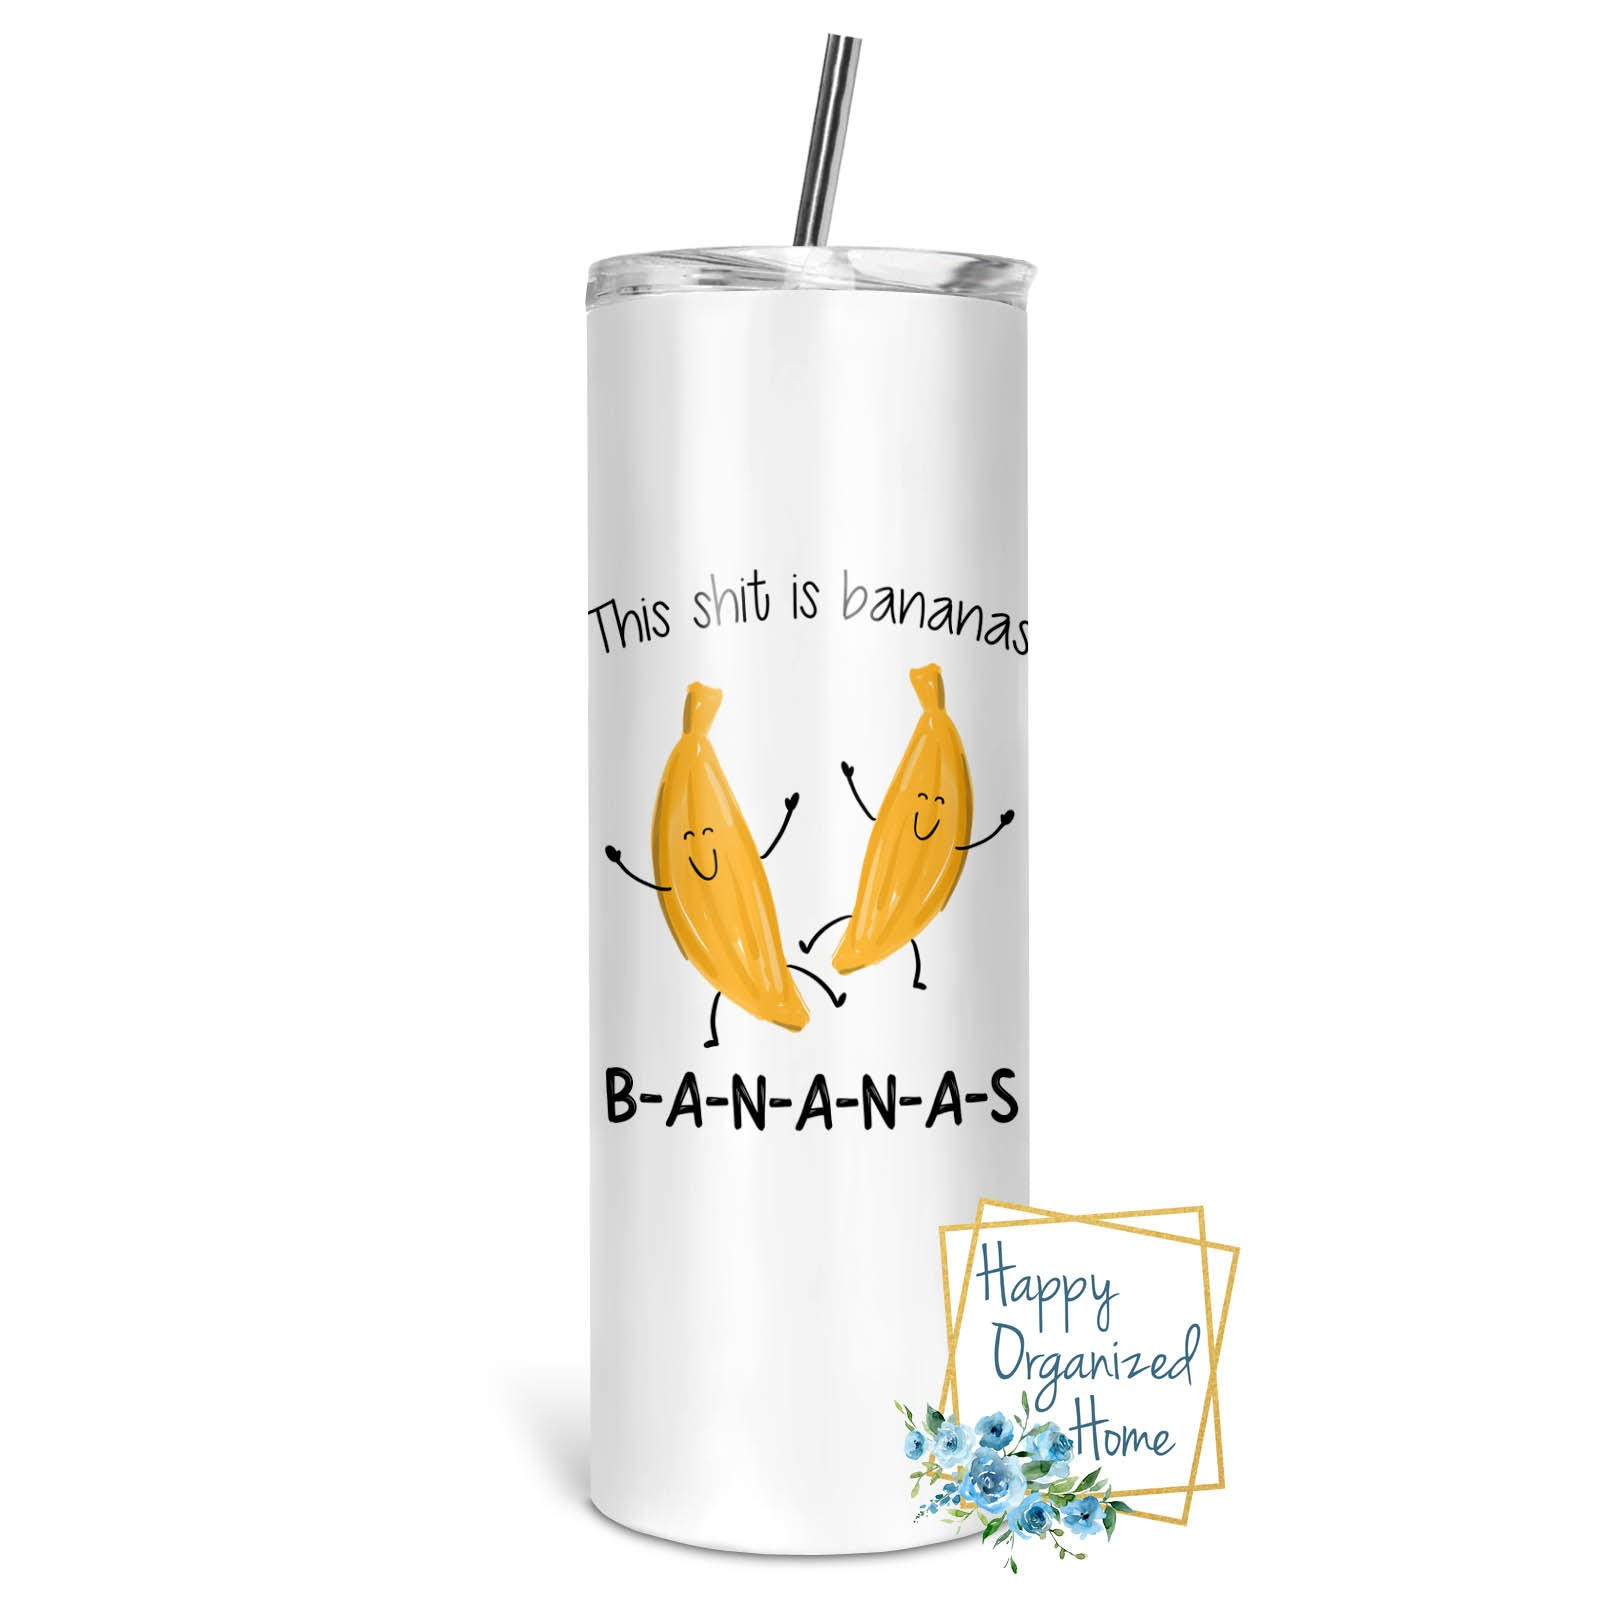 This Shit is Bananas B A N A N A S - Insulated tumbler with metal straw